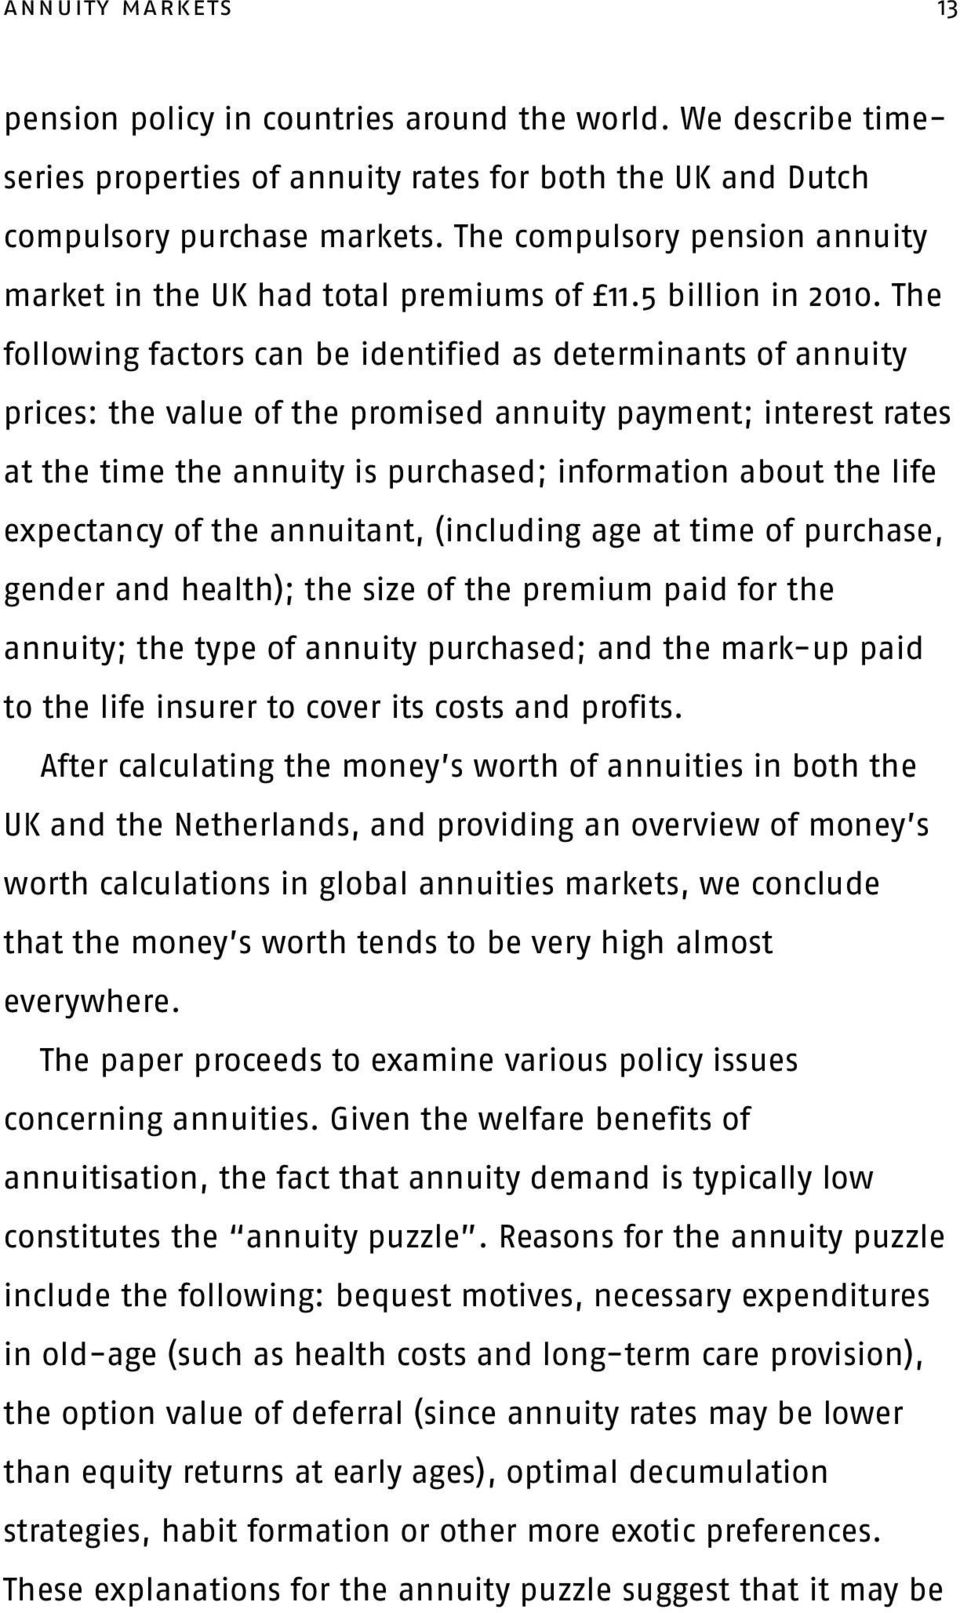 The following factors can be identified as determinants of annuity prices: the value of the promised annuity payment; interest rates at the time the annuity is purchased; information about the life